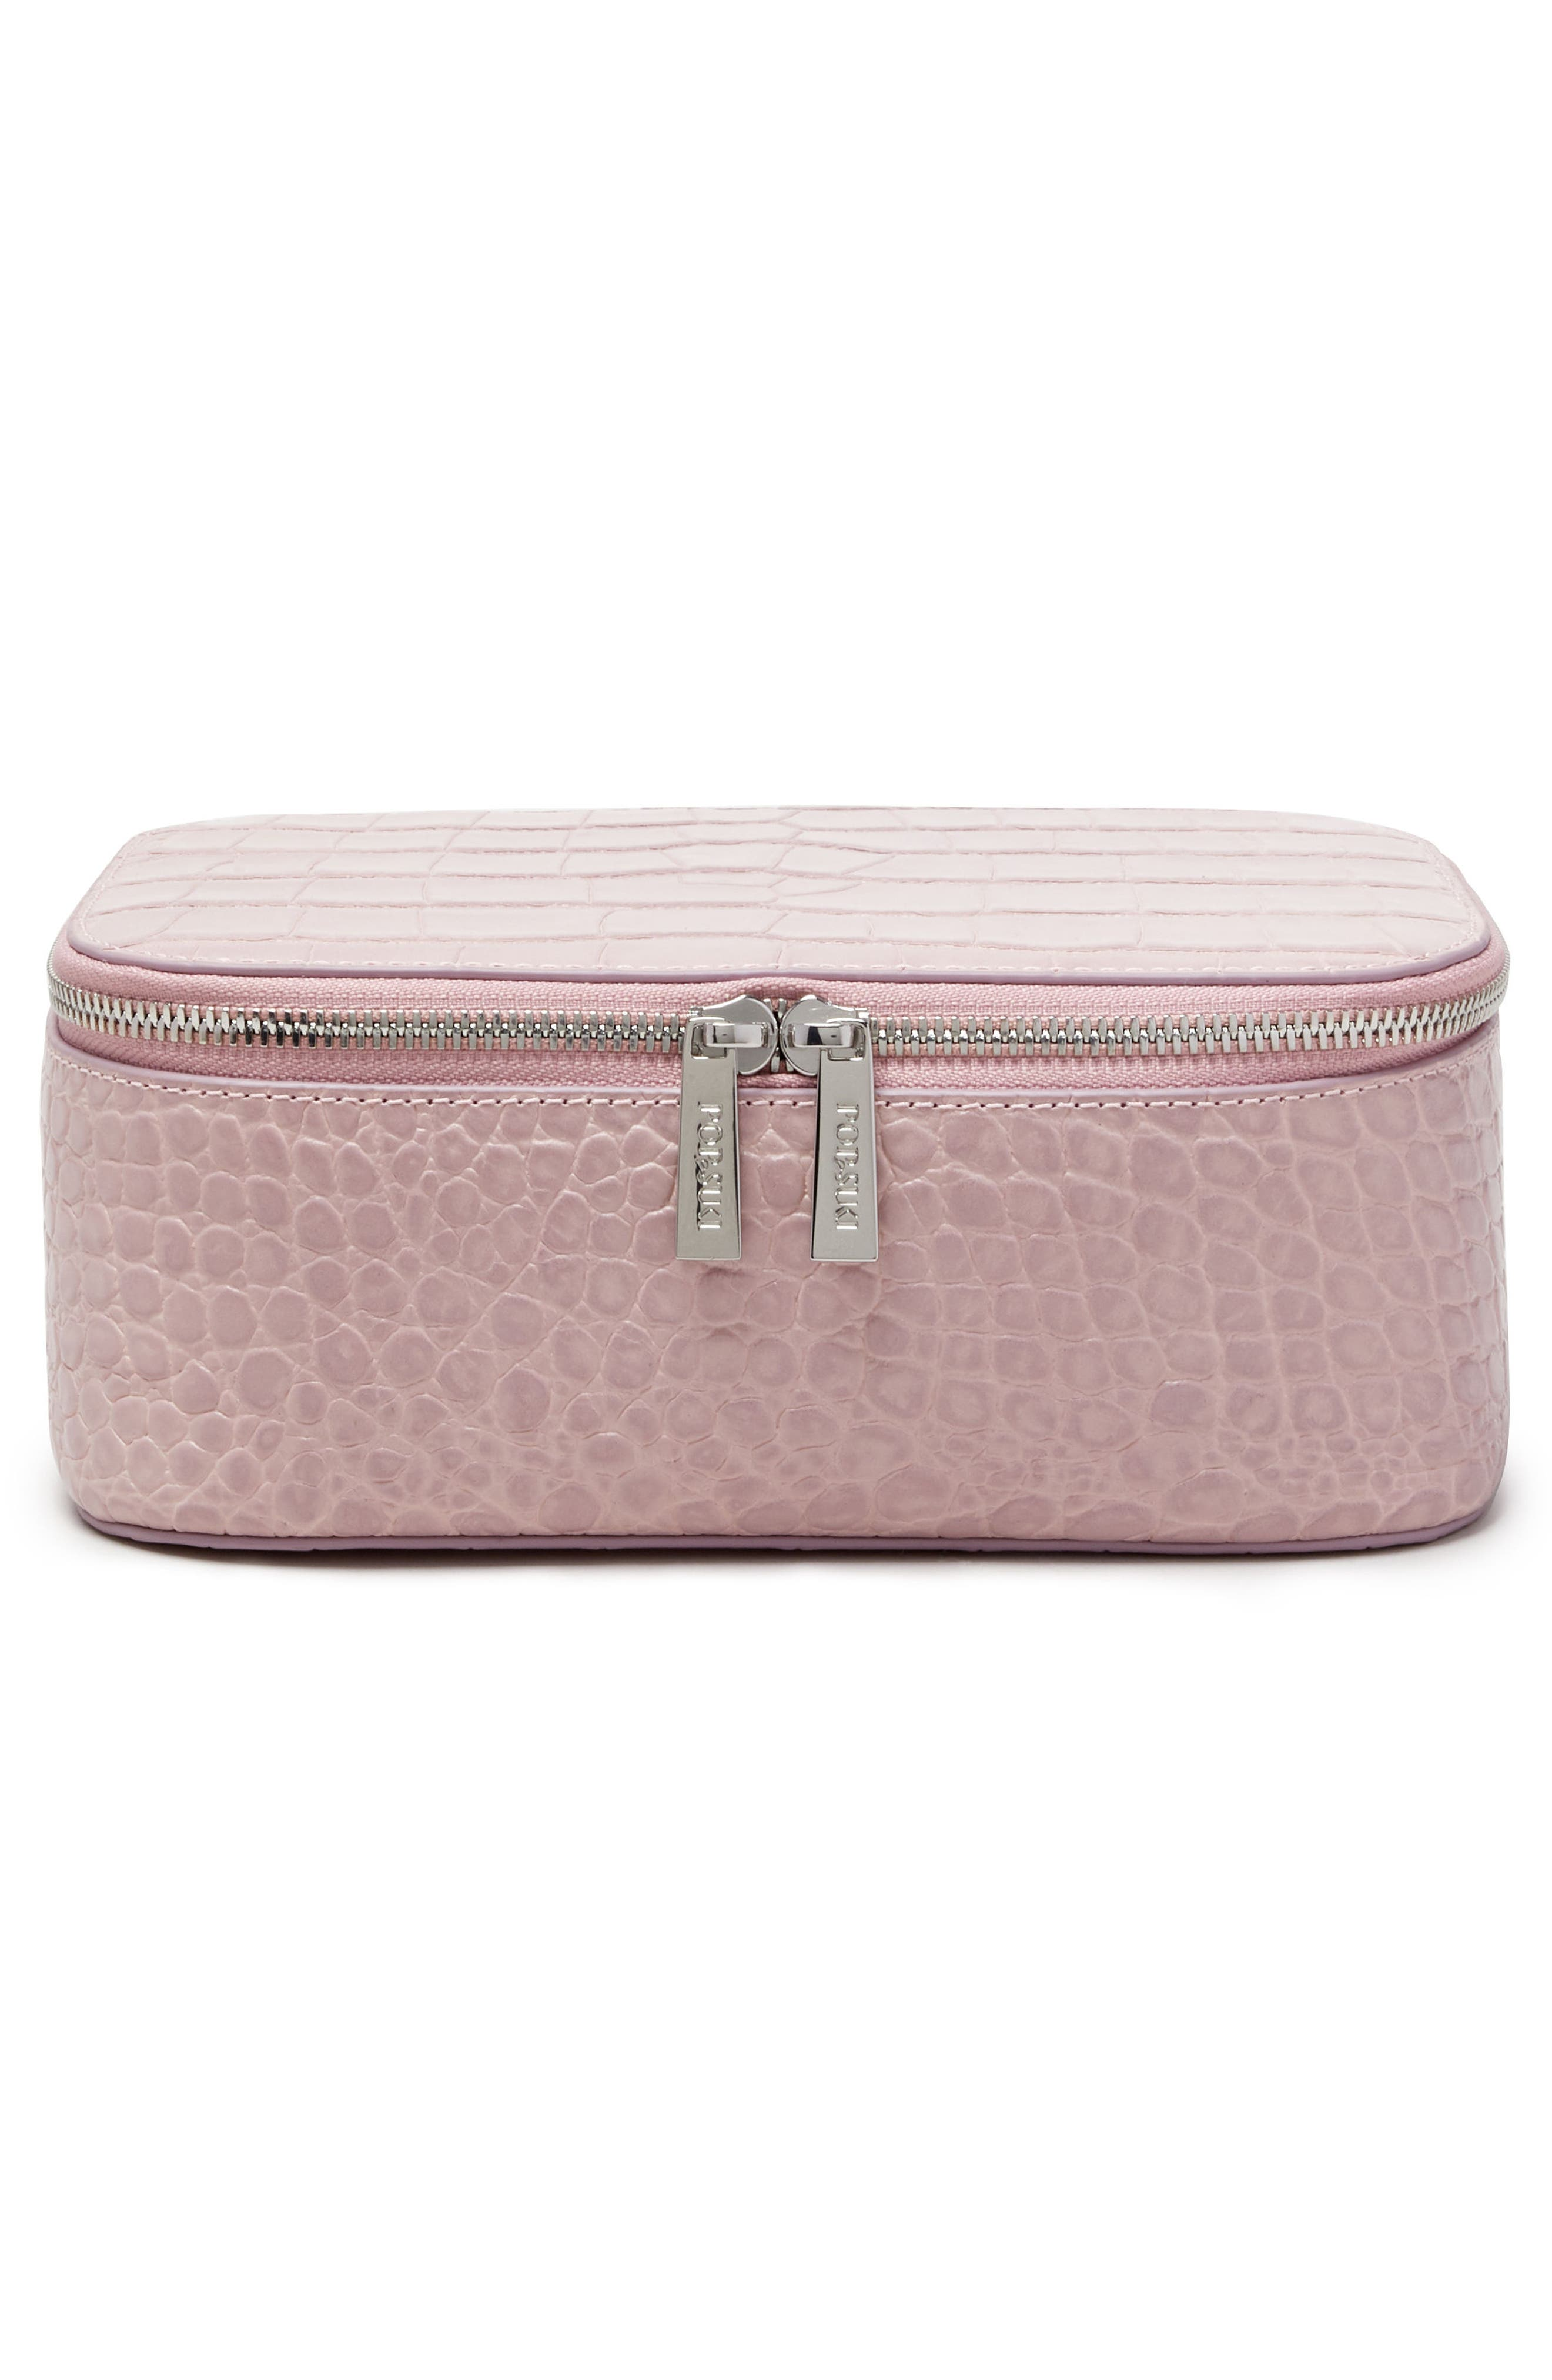 Croc Embossed Bigger Makeup Bag,                             Alternate thumbnail 3, color,                             Mauve